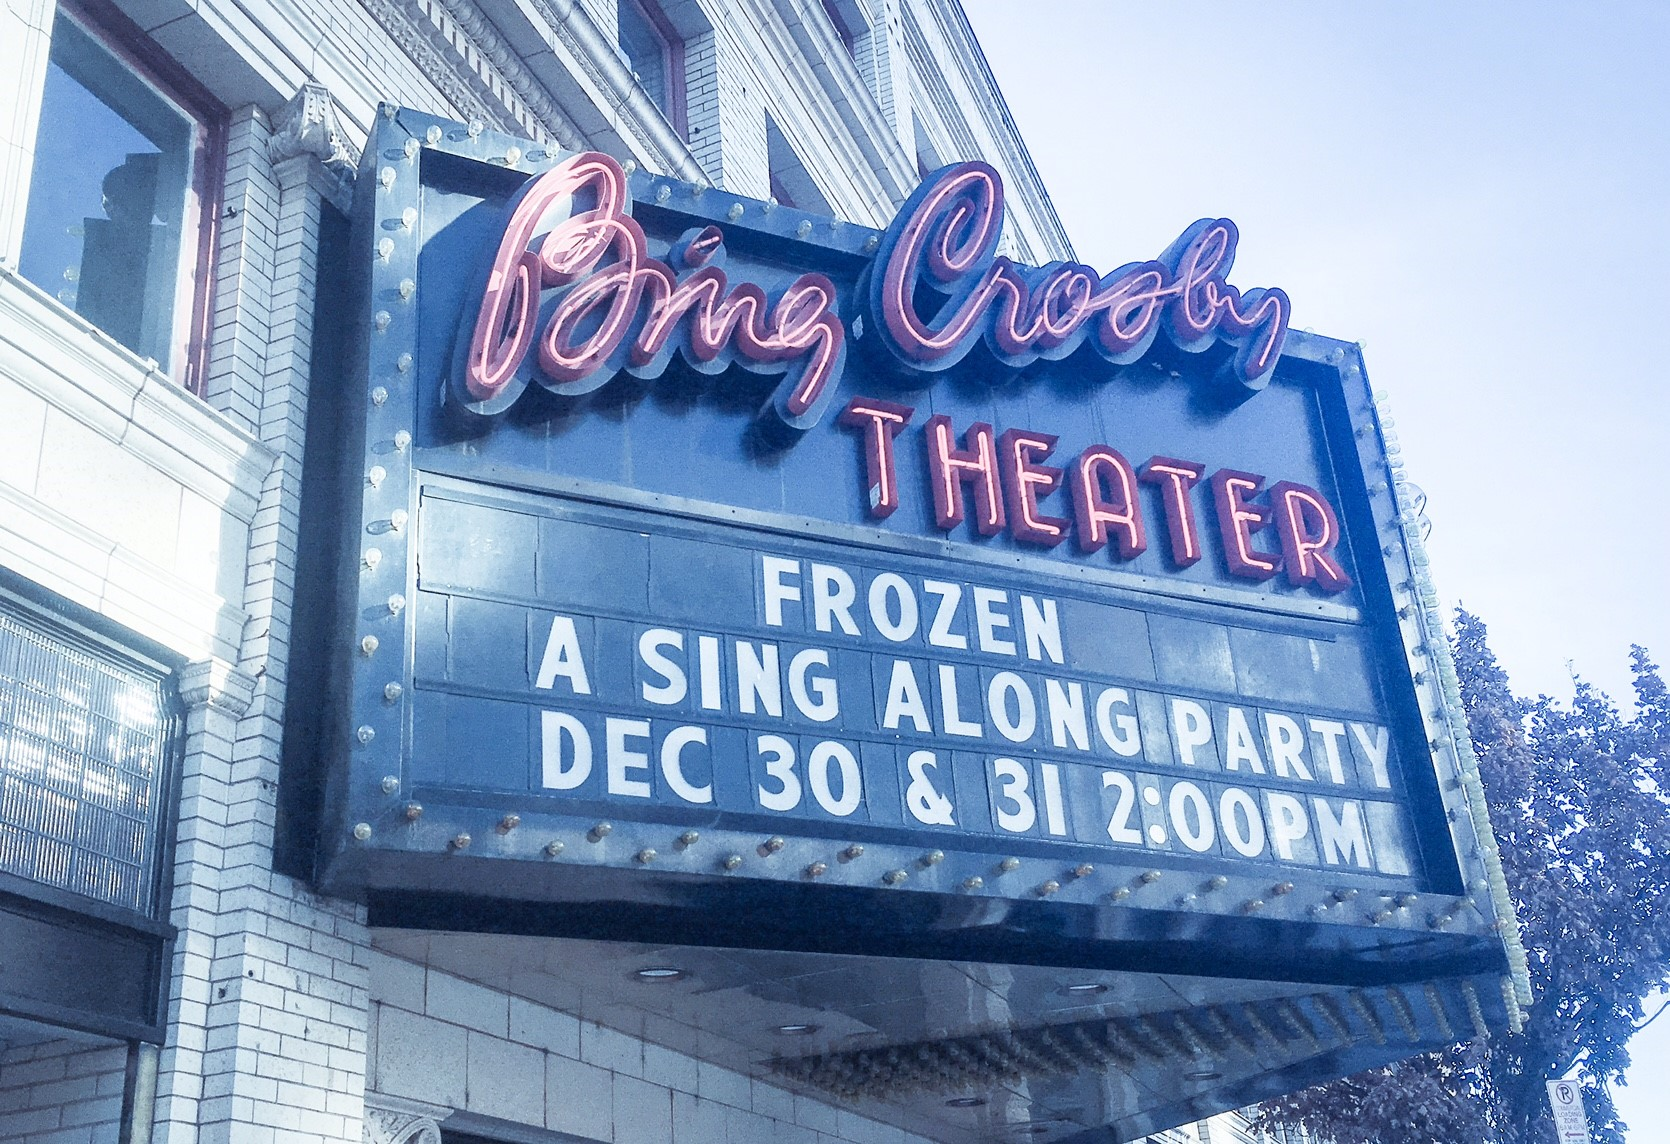 Bing Crosby Theatre in Winter